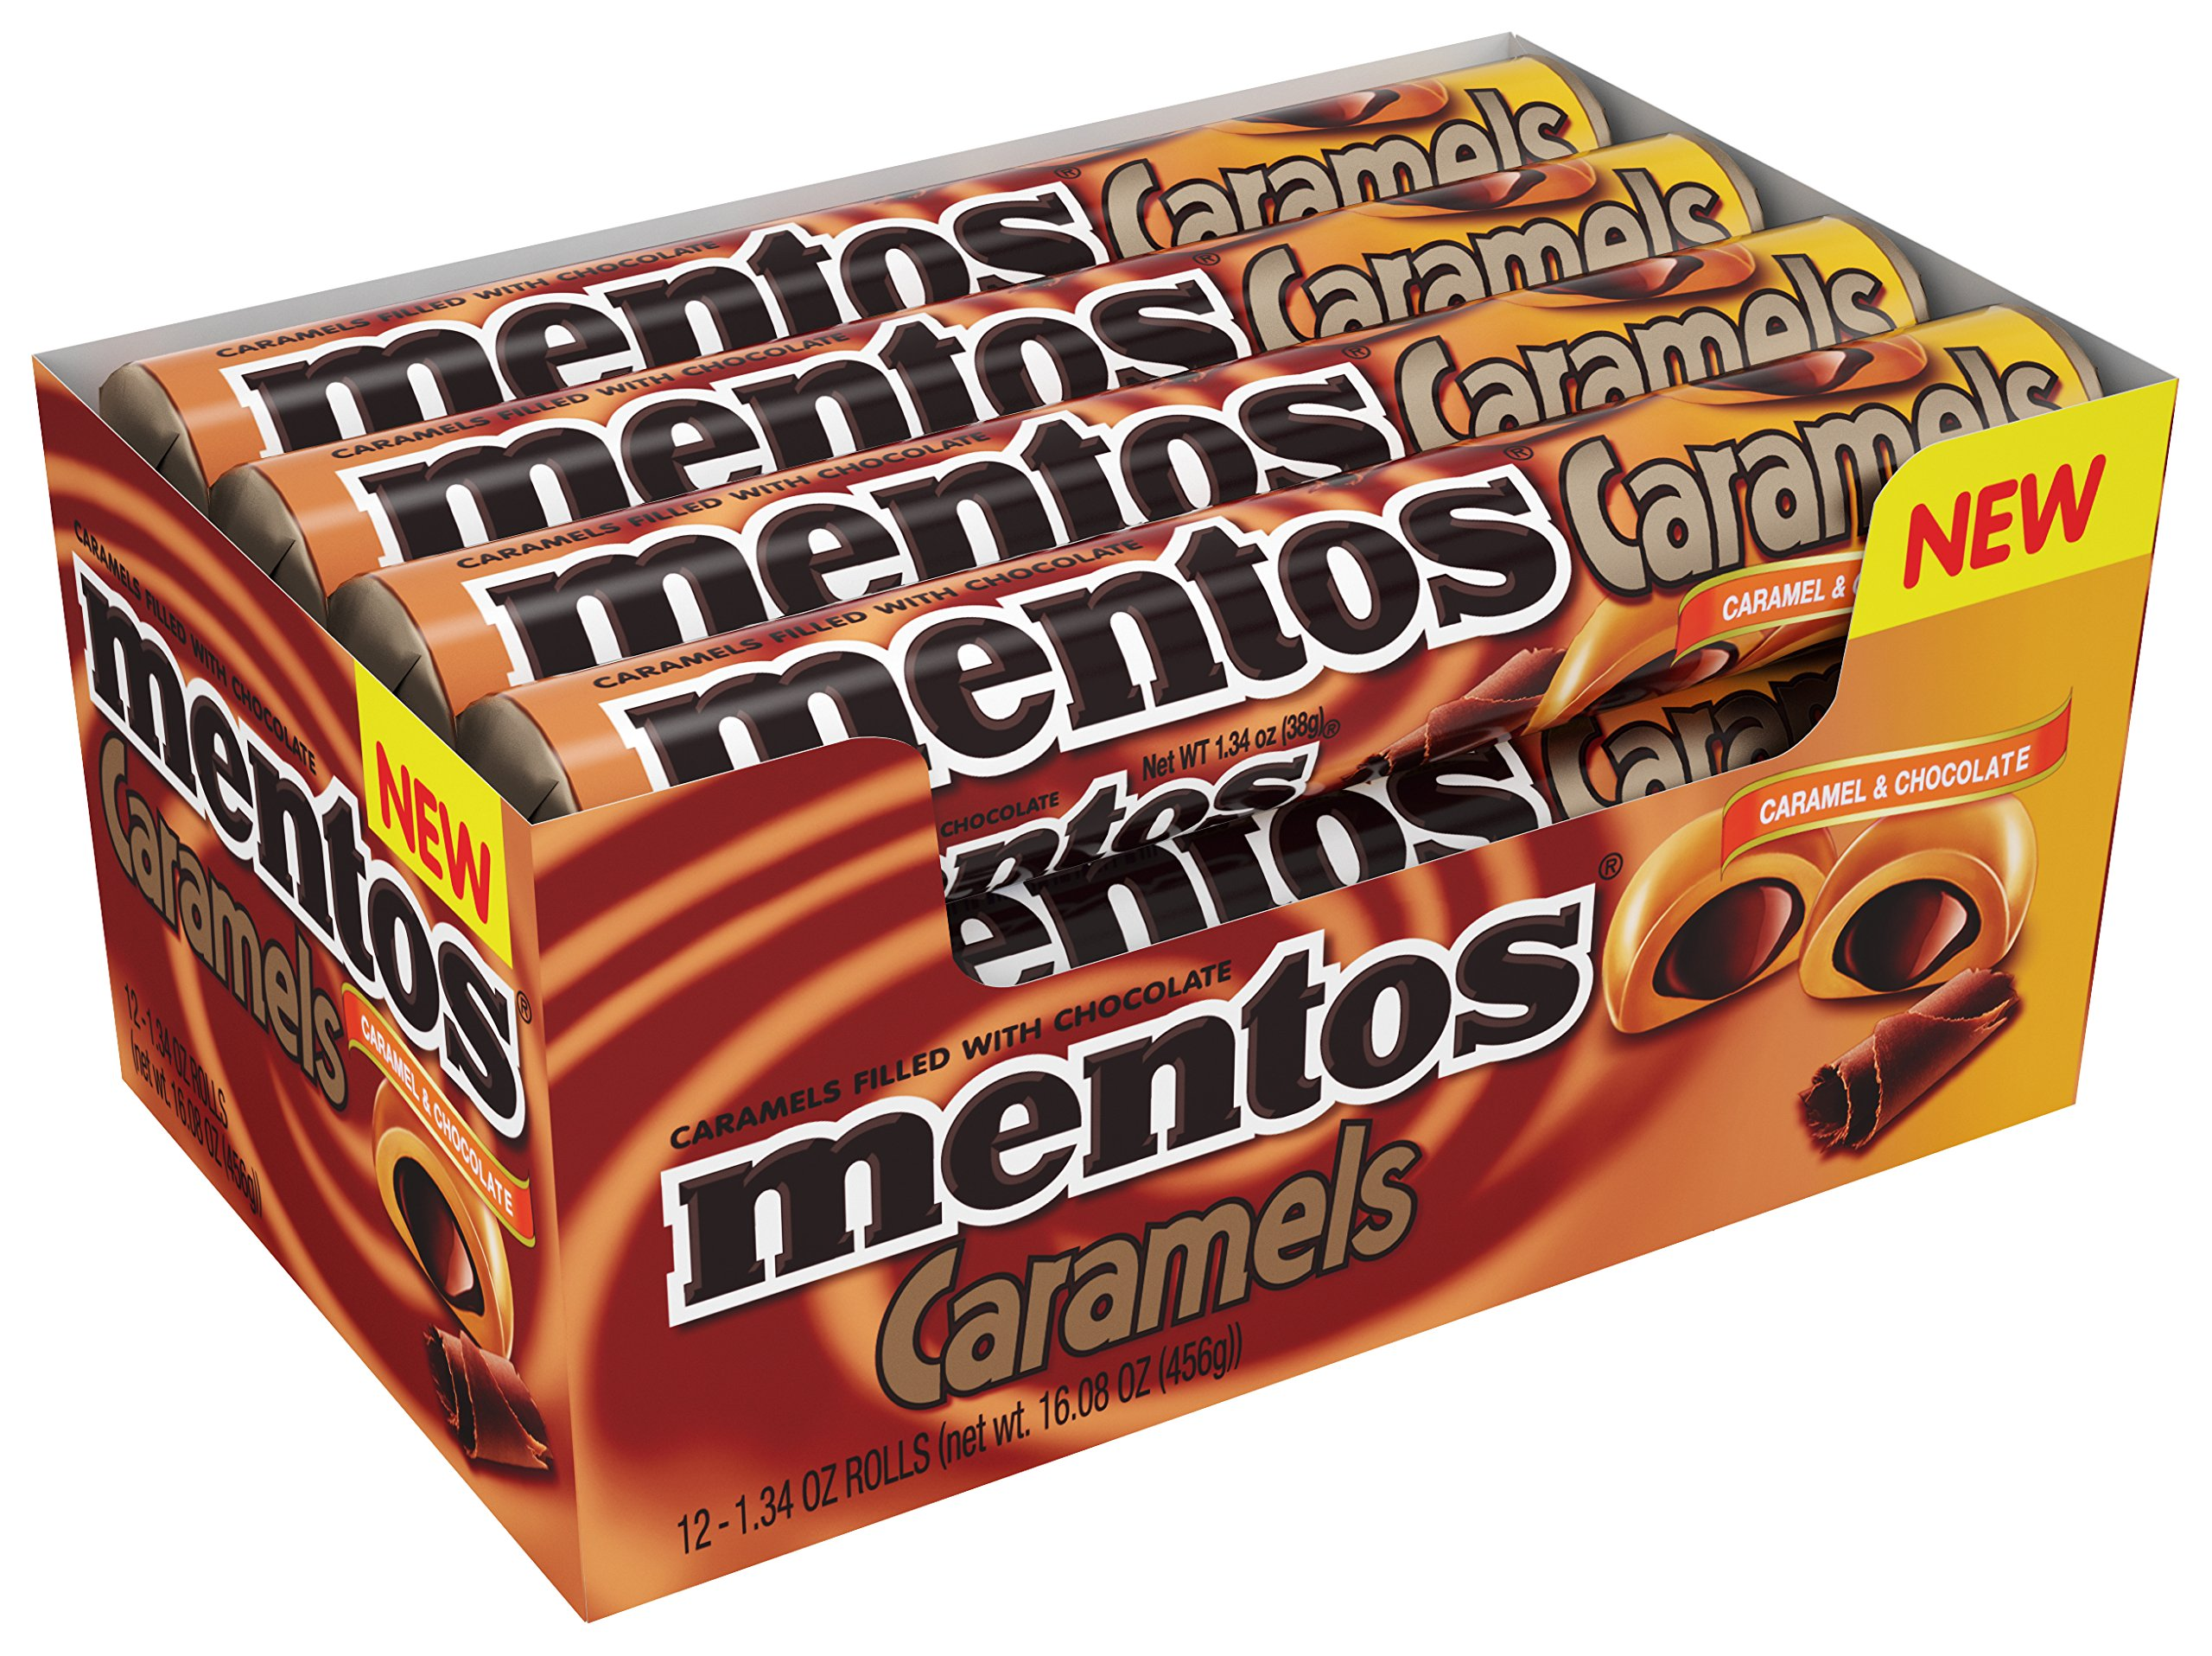 Mentos Caramels Candy Roll, Caramel & Chocolate, 1.34 ounce/14 Pieces (Pack of 12)